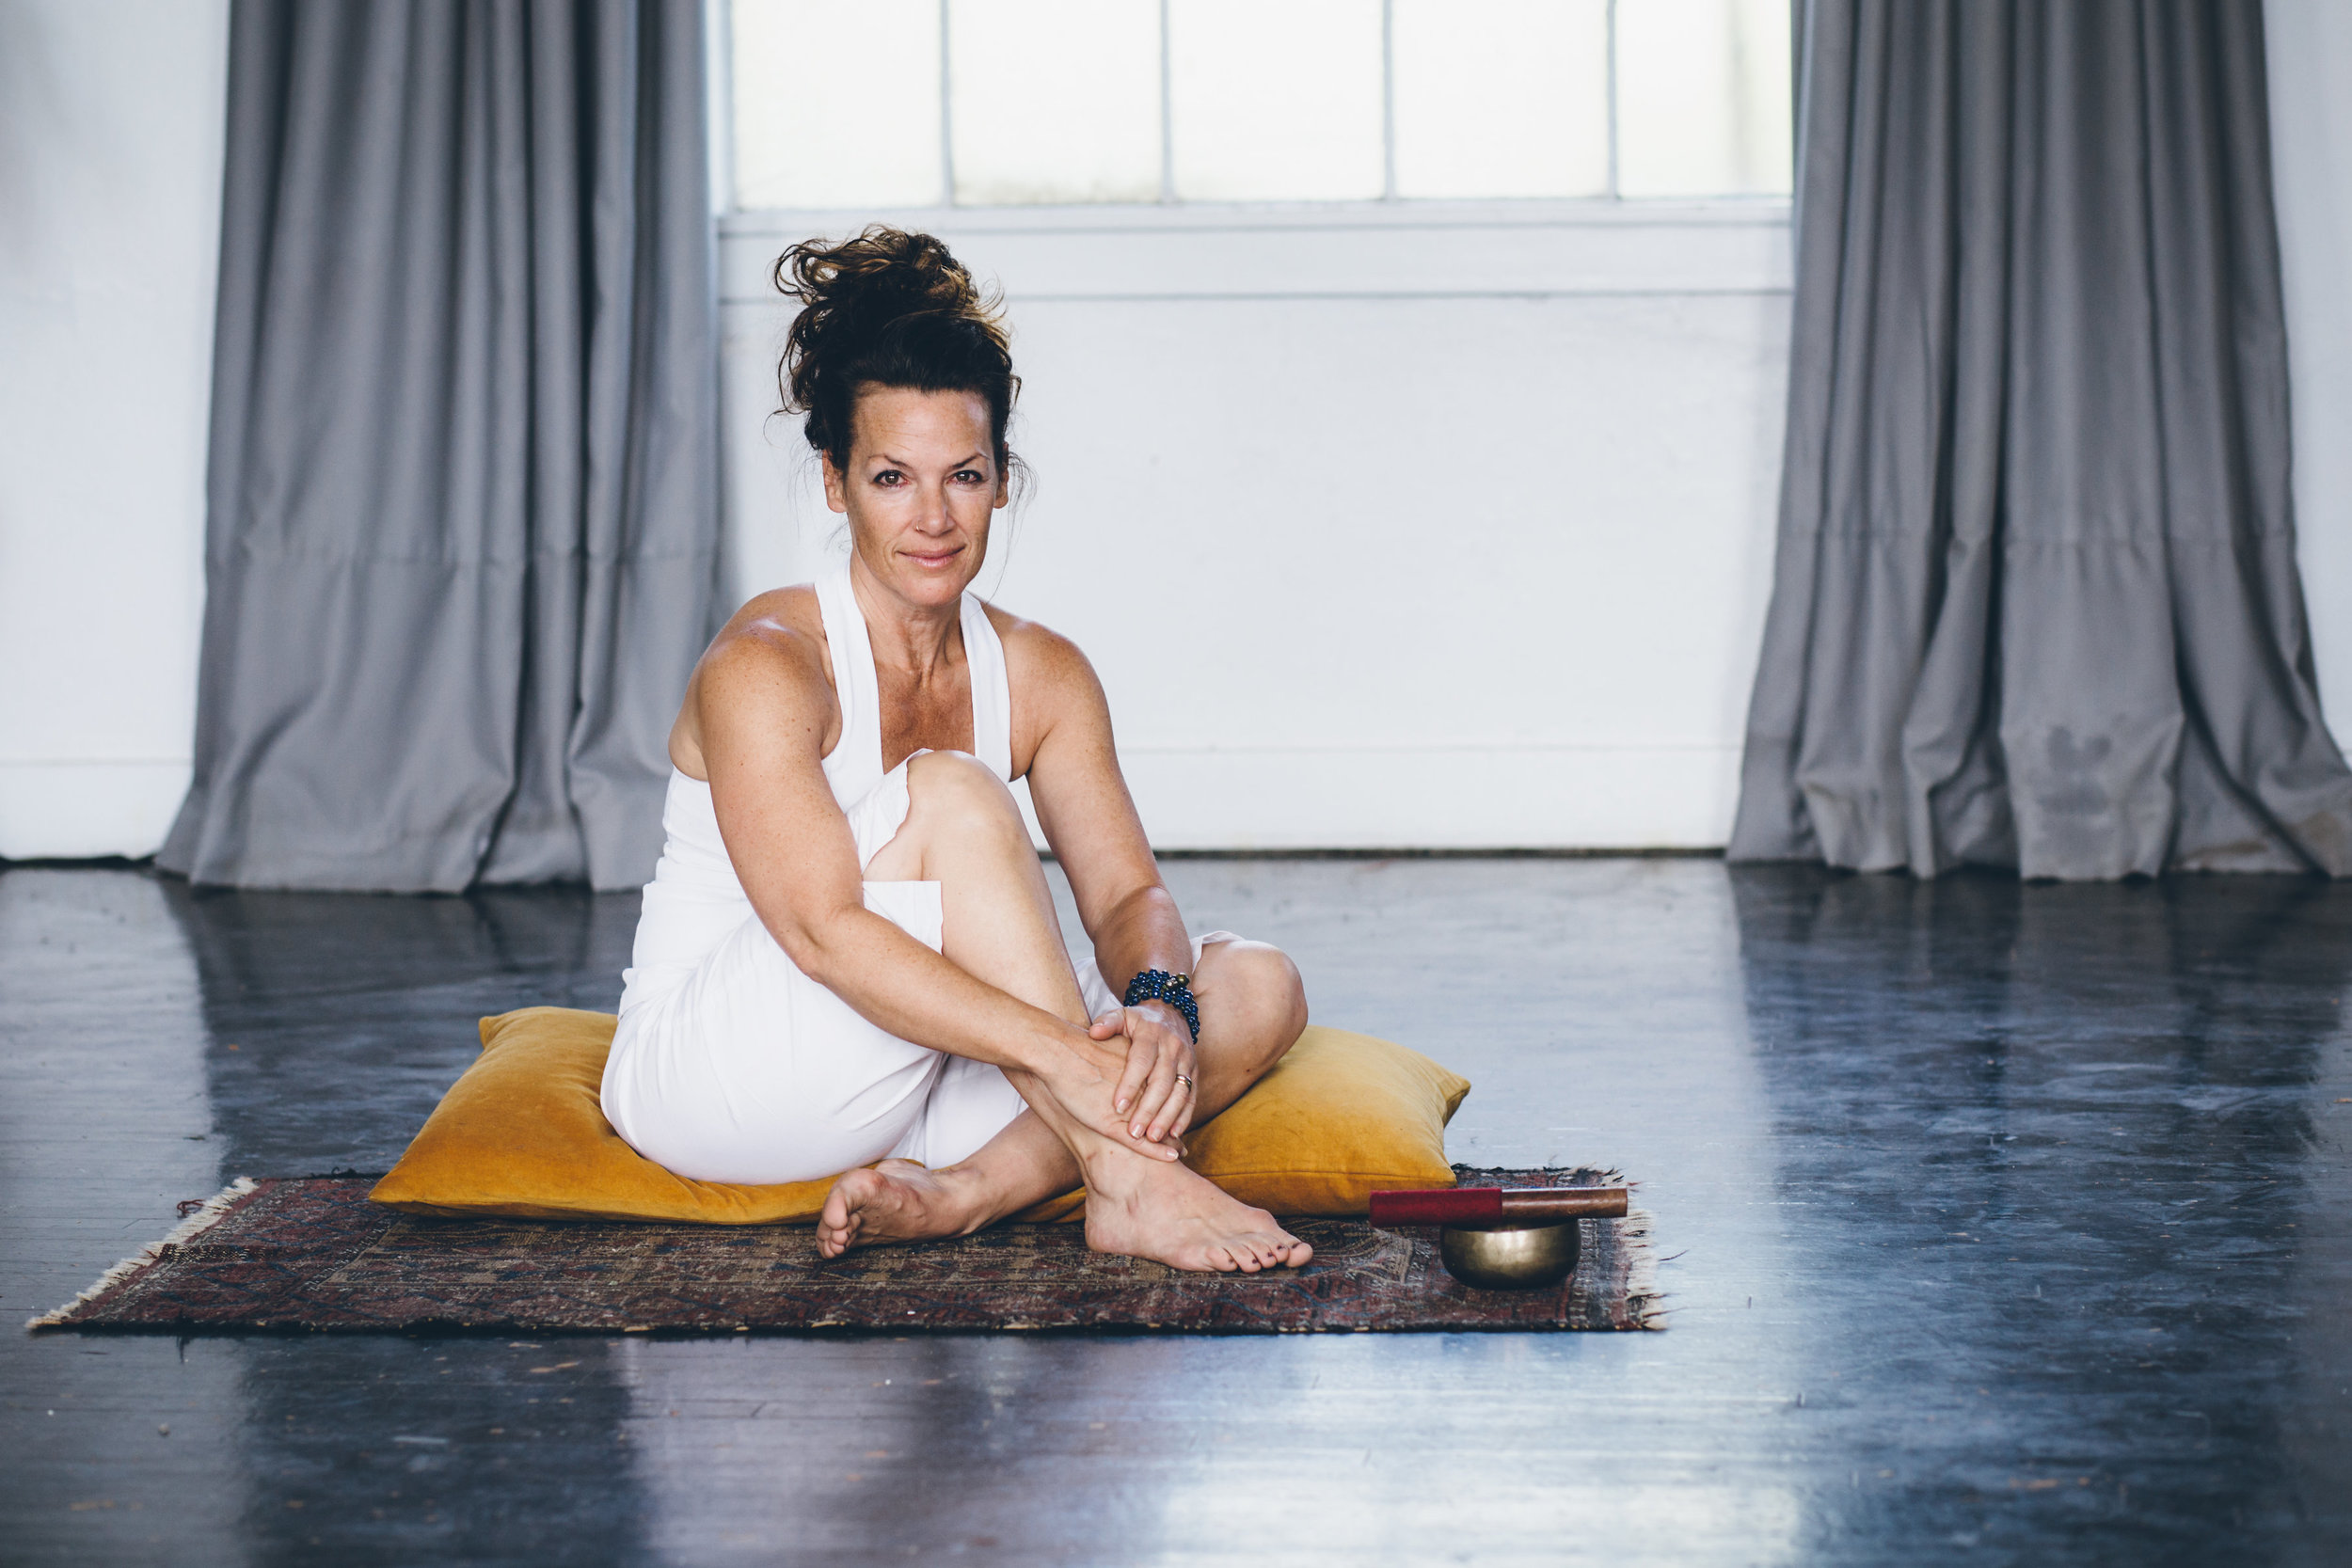 Tina Porter is a nationally recognized Yoga and Meditation teacher located in Denver, CO. She focuses on the psychology of Yoga and integration of breath into every day life. She currently teaches at    select studios    in Denver, leads events and offers private programs to both individuals and corporations. Tina has taught classes, workshops and retreats all over the world and has been noted in renown publications such as Top of the Town, 5280 Magazine, Origin, Shape, Yoga Journal and The Denver Post    Tina Porter Yoga  is a multi-dynamic experience; a merging of movements that combines balanced sequence with elements of physical exercise, mindfulness, meditation and breath work.Tina's classes blend Yoga and Psychology. Through her ever-evolving series of flowing poses and guided breathing techniques, your body will physically open while also stretching the space between thought forms.